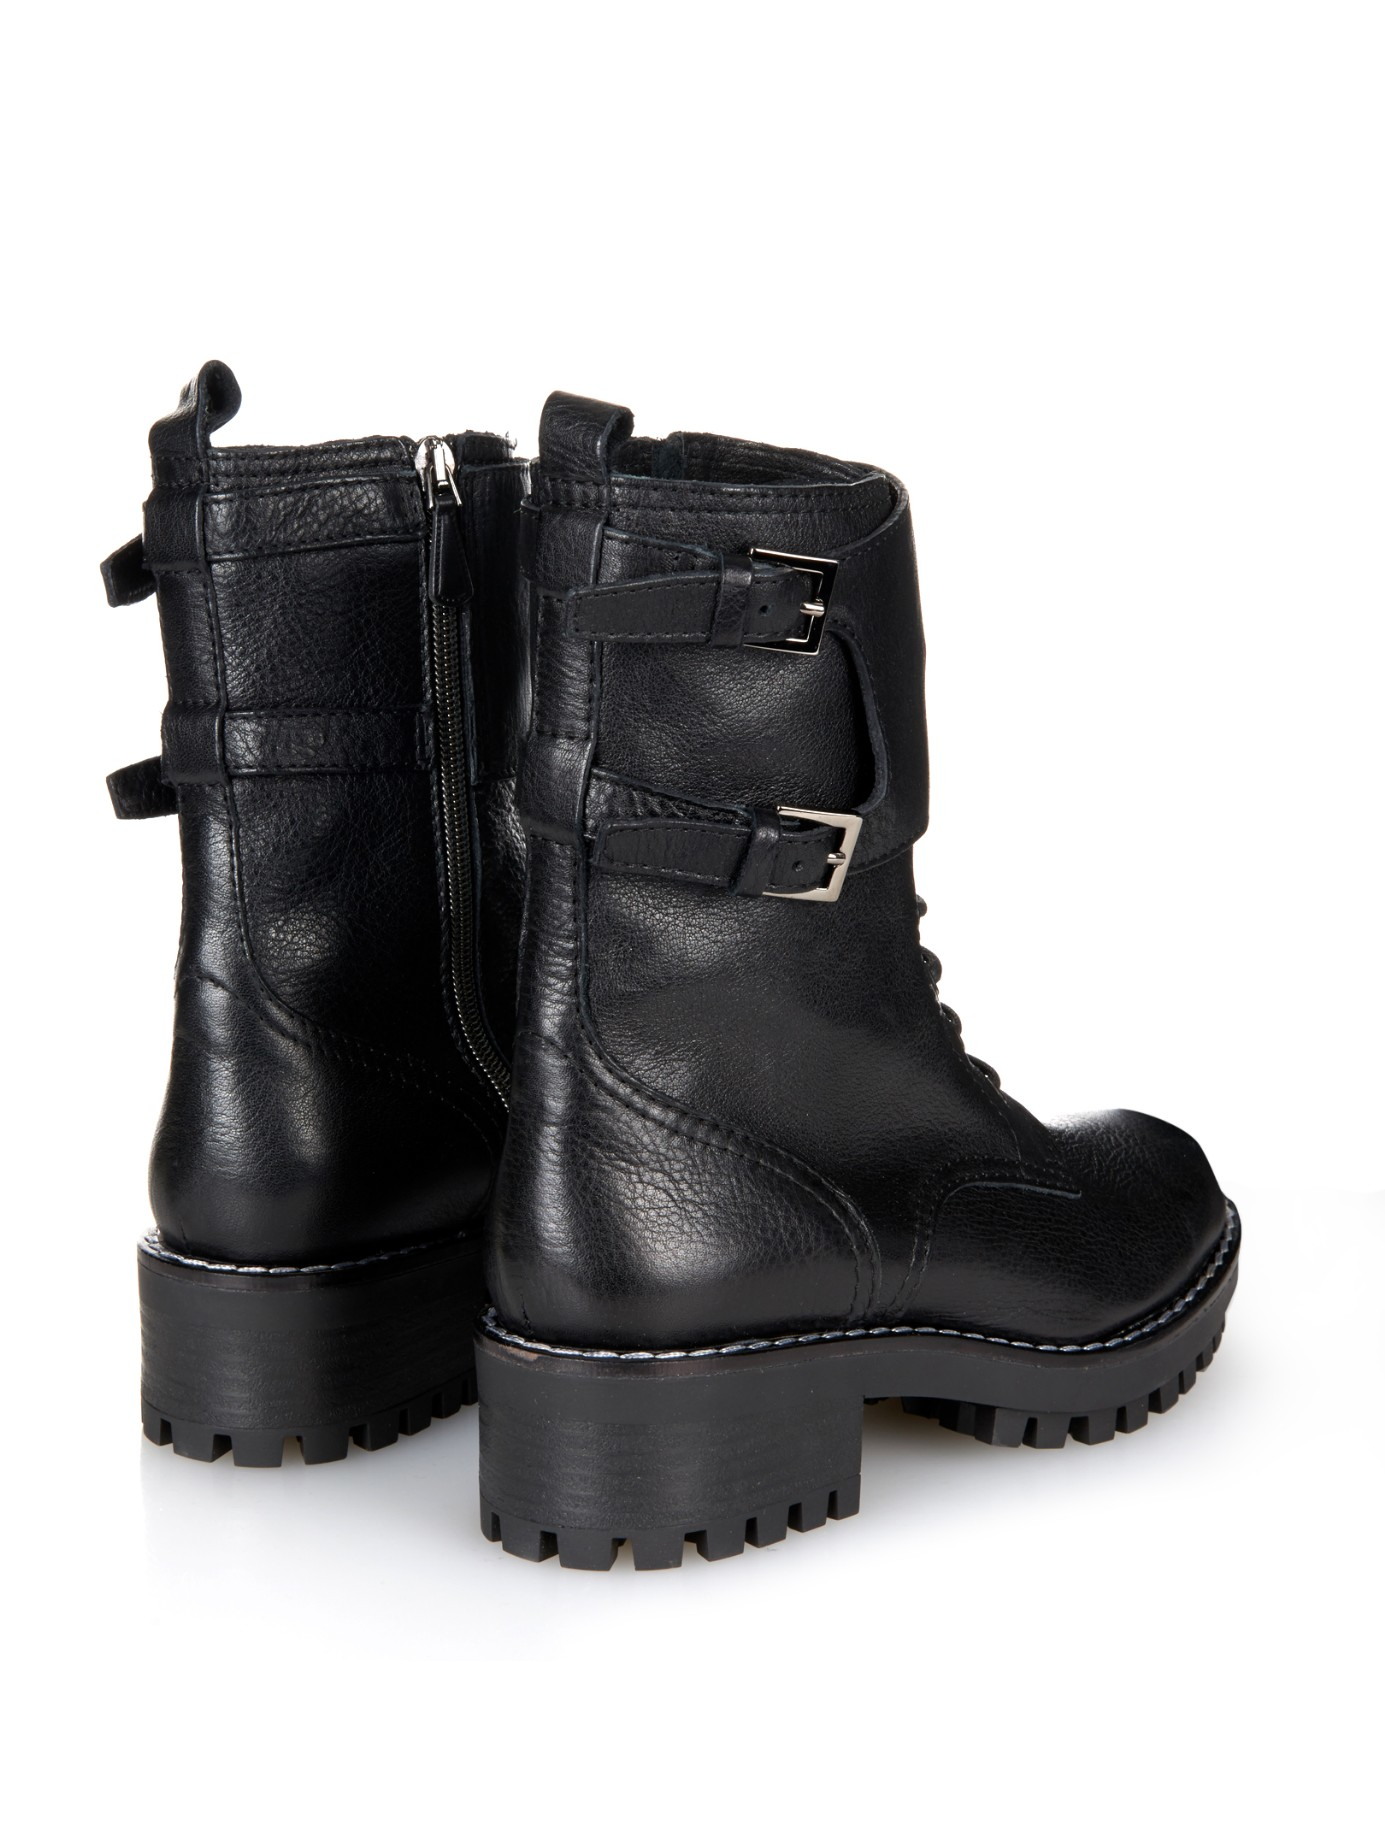 Red valentino Lace-Up Leather Combat Boots in Black | Lyst